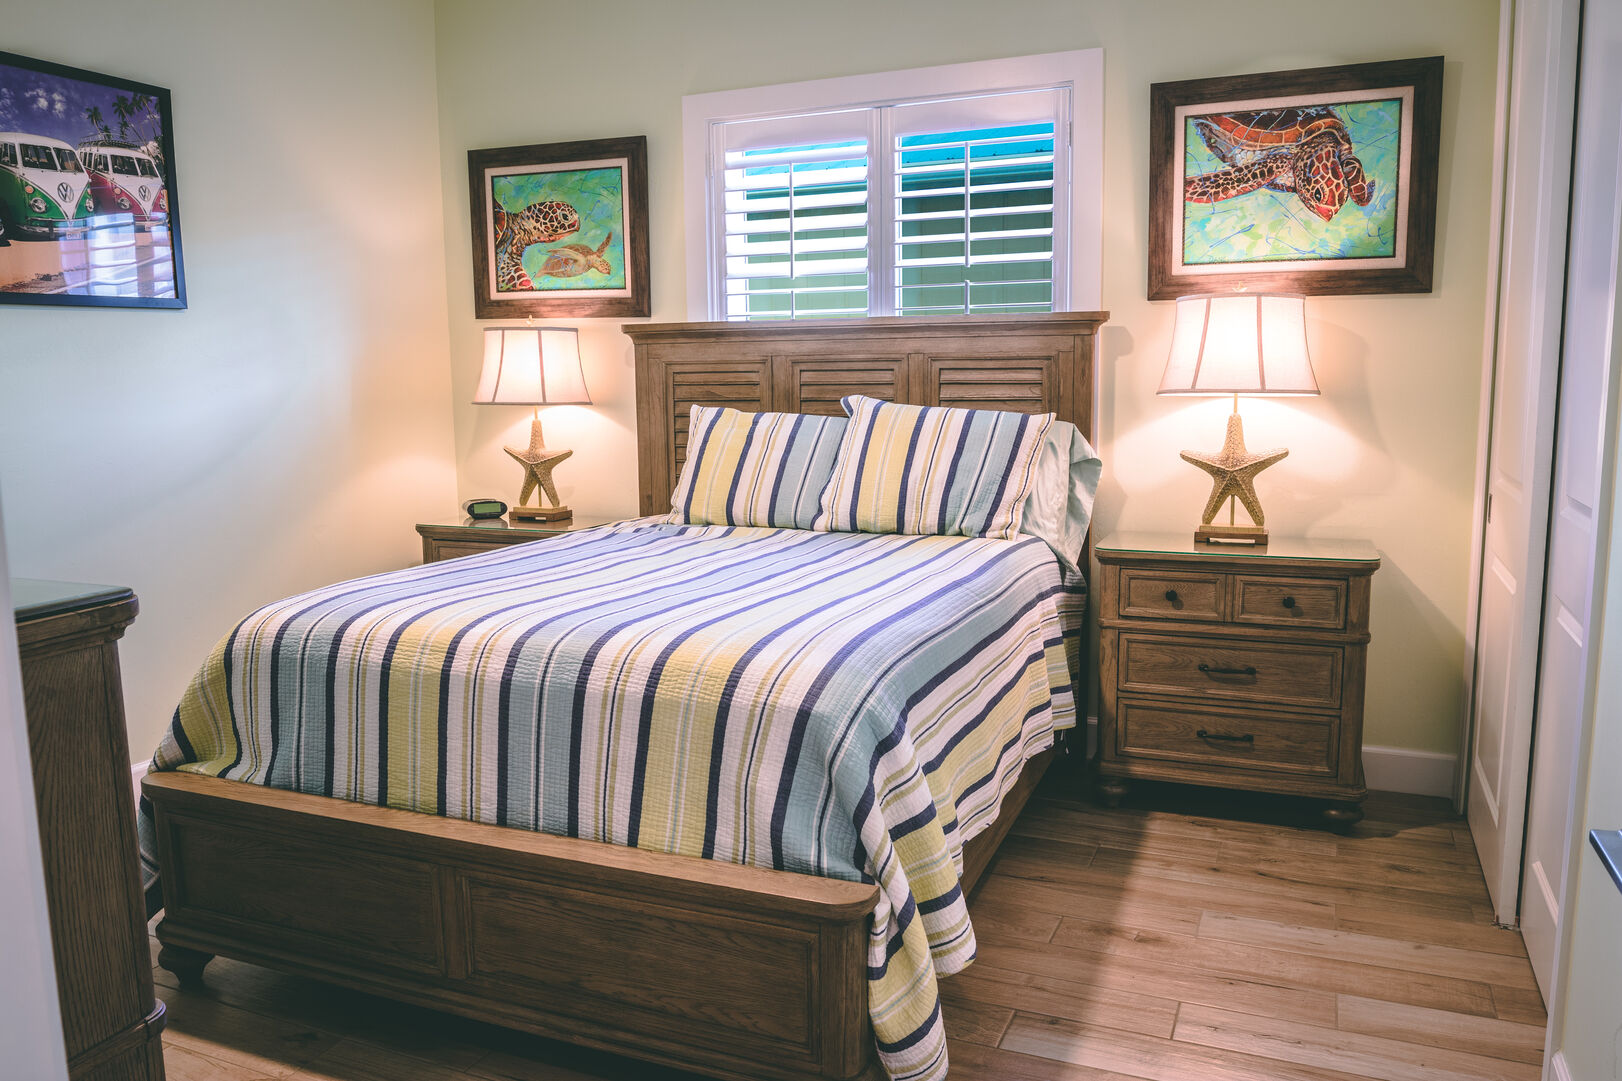 Bedroom with large bed and two nightstands, one on either side.